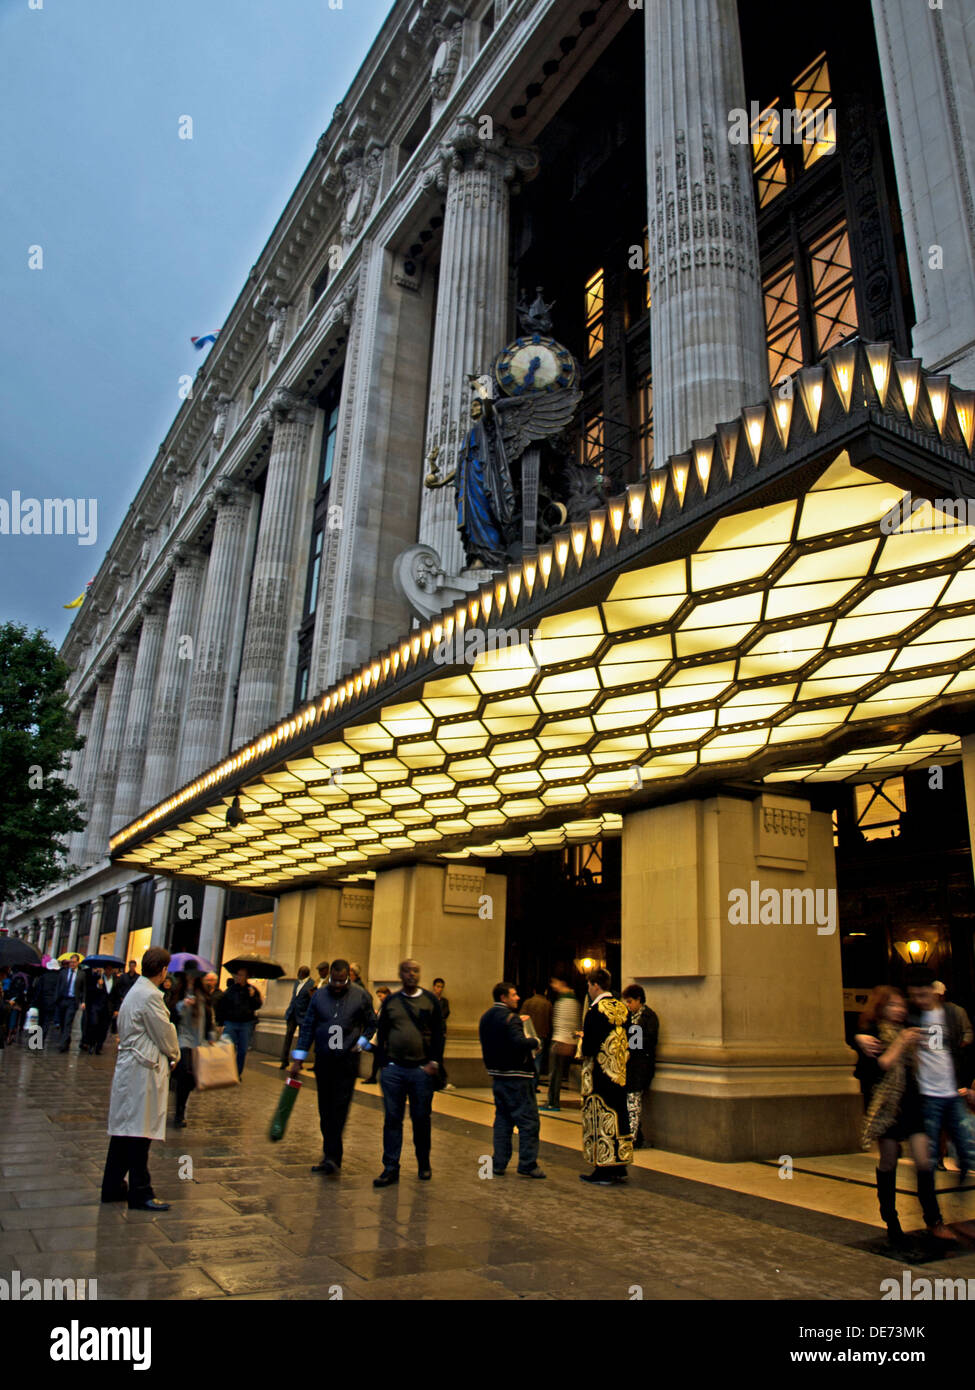 Entrance of Selfridge's Department Store, Oxford Street, City of Westminster, London, England, United Kingdom - Stock Image